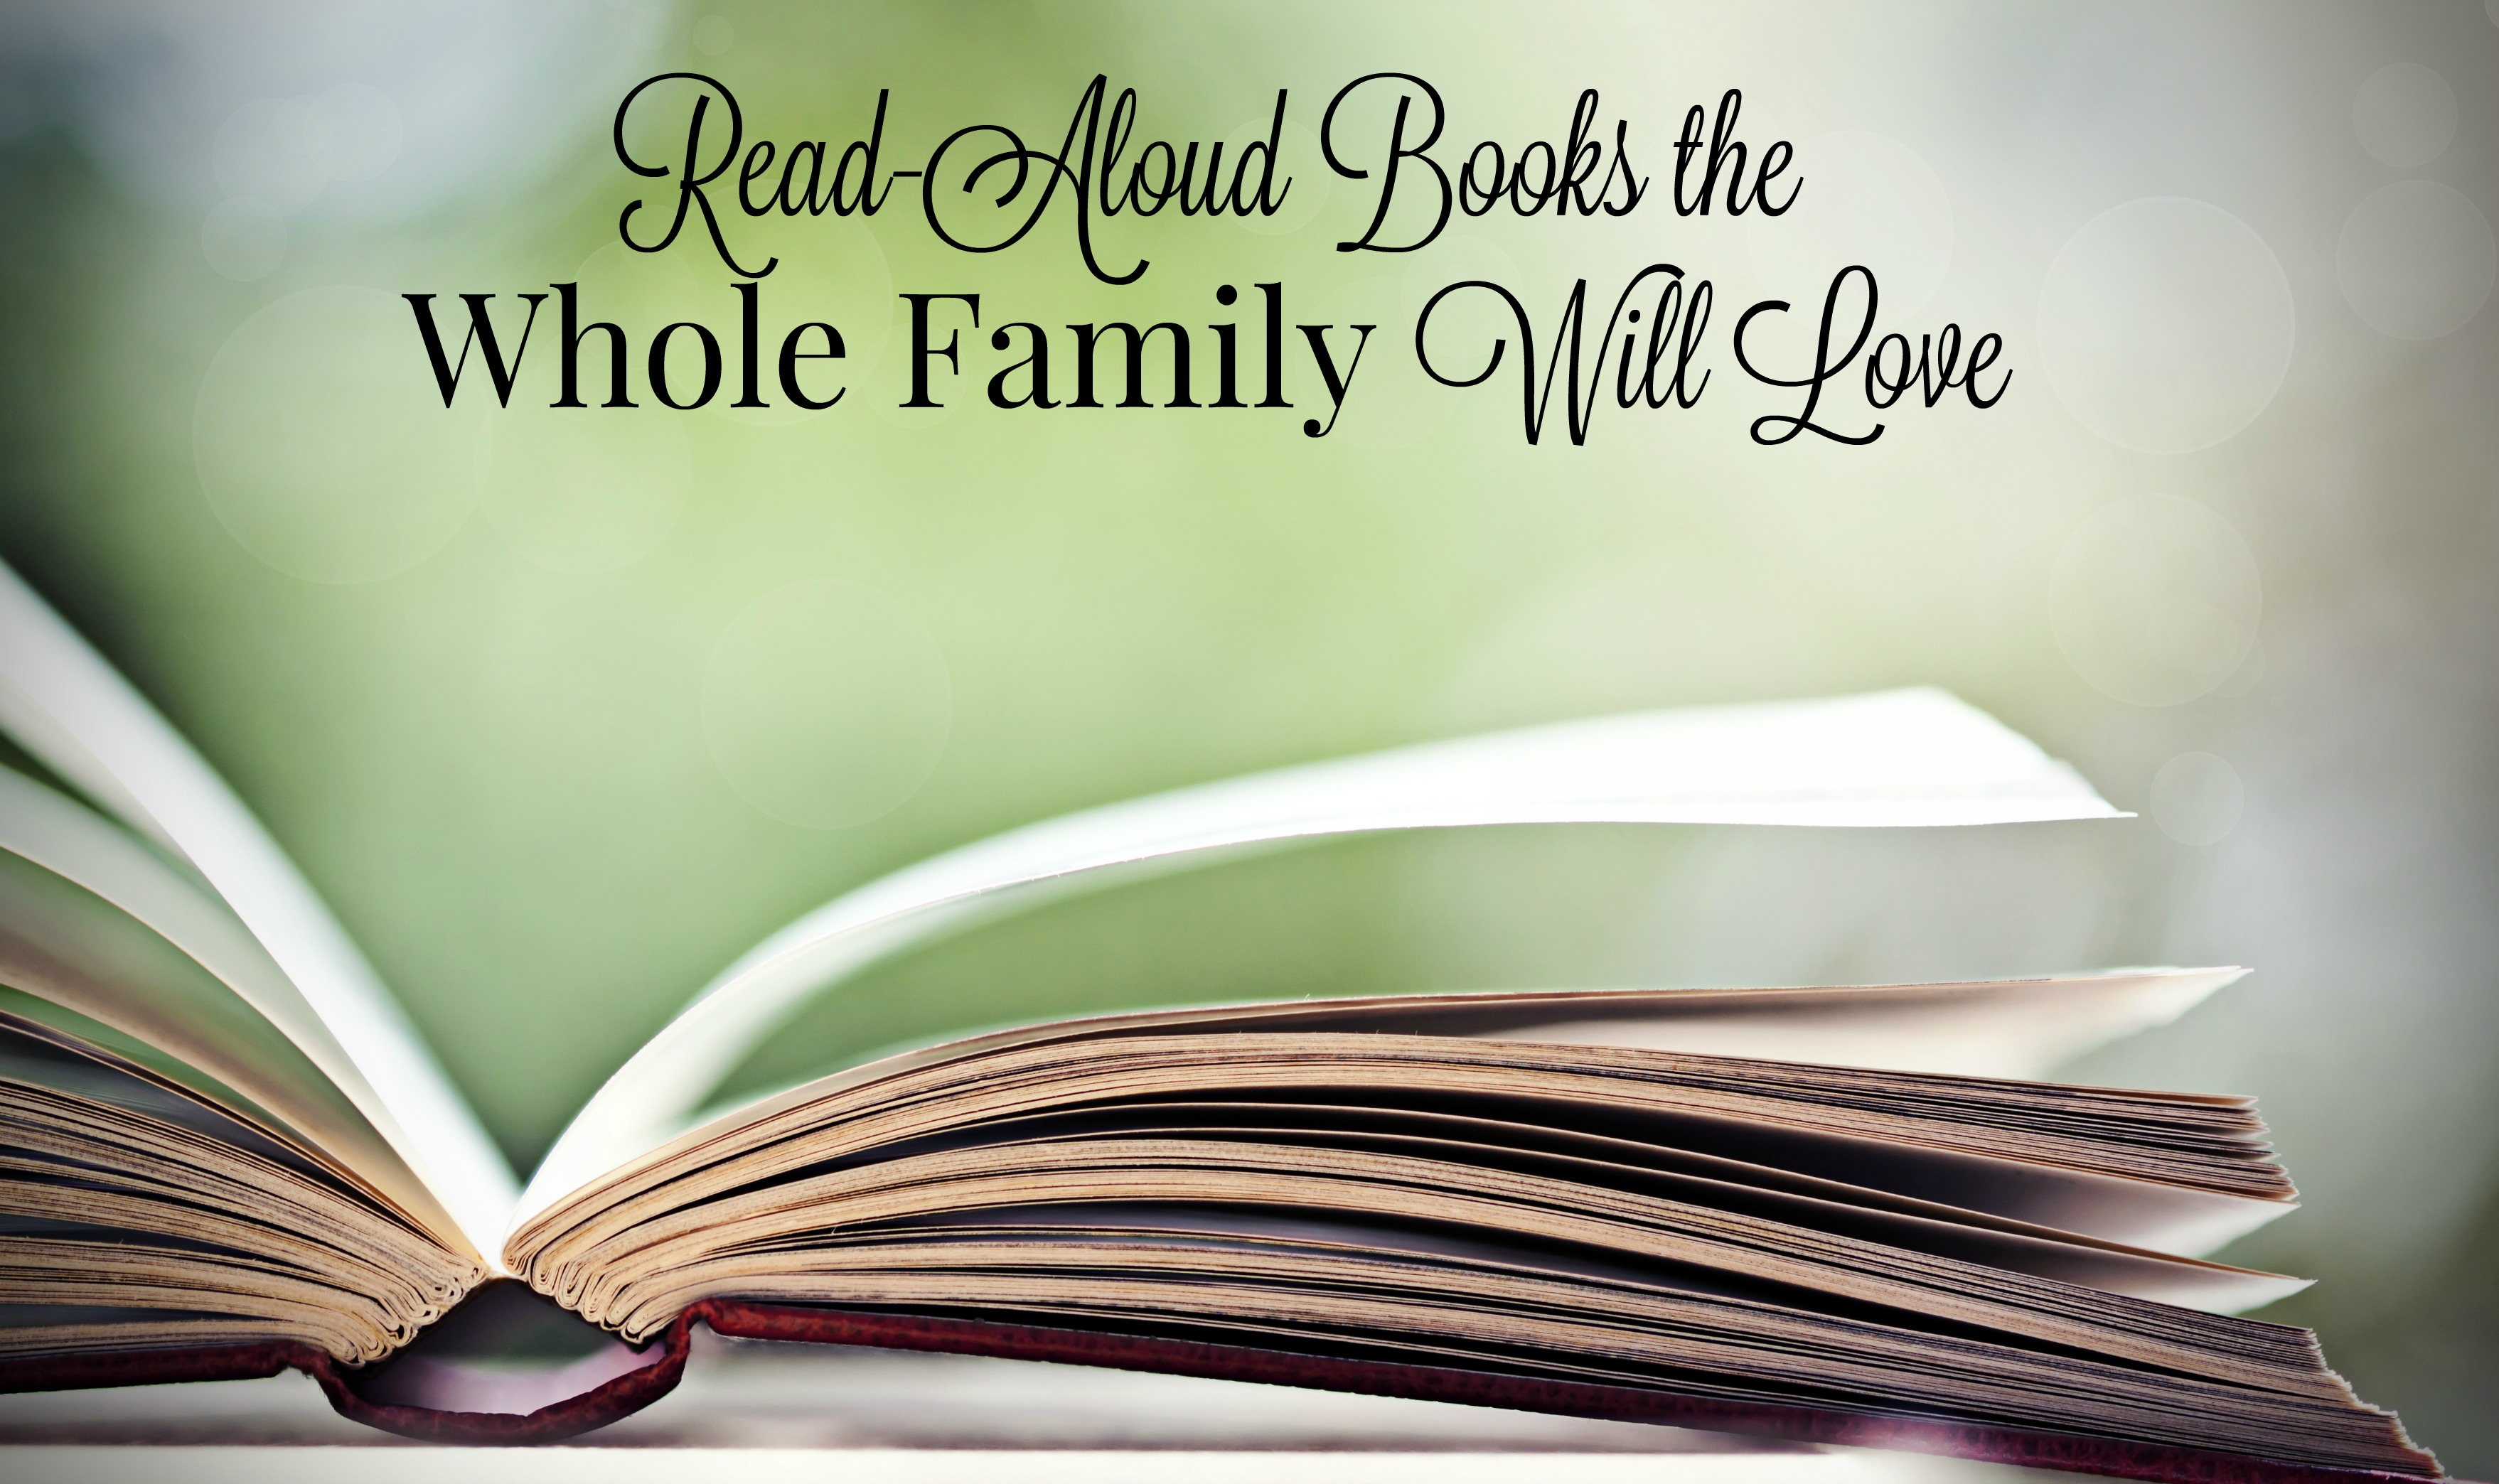 Read-Aloud Books the Whole Family Will Love